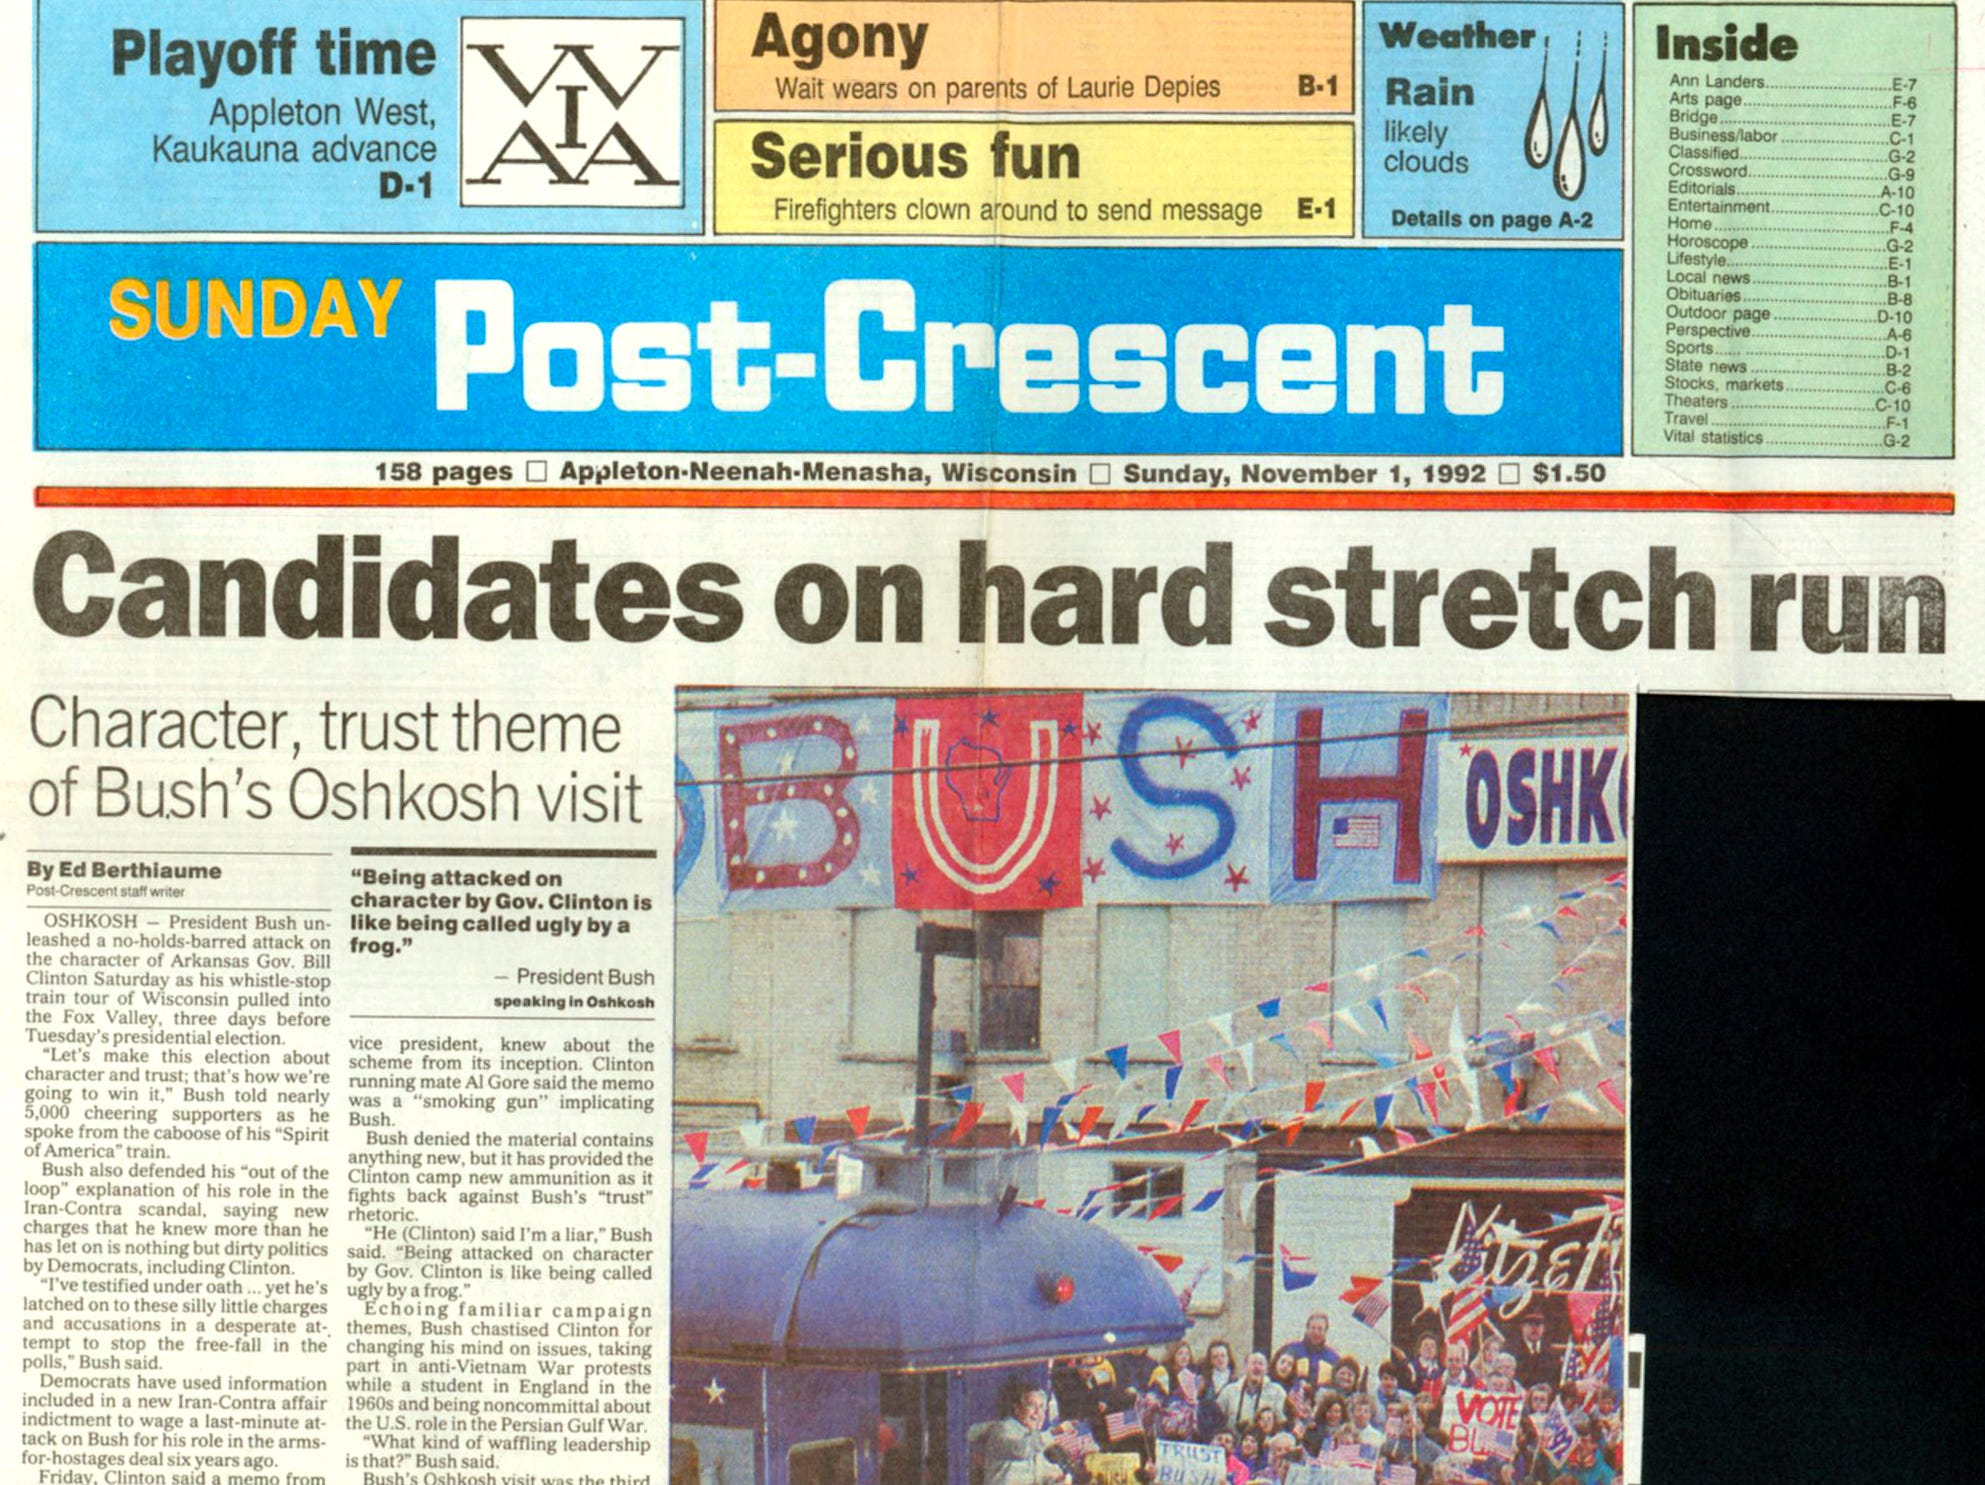 """Nov. 1, 1992. Character, trust theme of Bush's Oshkosh visit story by Ed Berthiaume in The Post-Crescent. President George H. W. Bush's """"Spirit of America""""  whistle-stop campaign train passed through Neenah, Dale, Weyauwega, Waupaca, Amherst and Amherst Junction on the way to Stevens Point."""